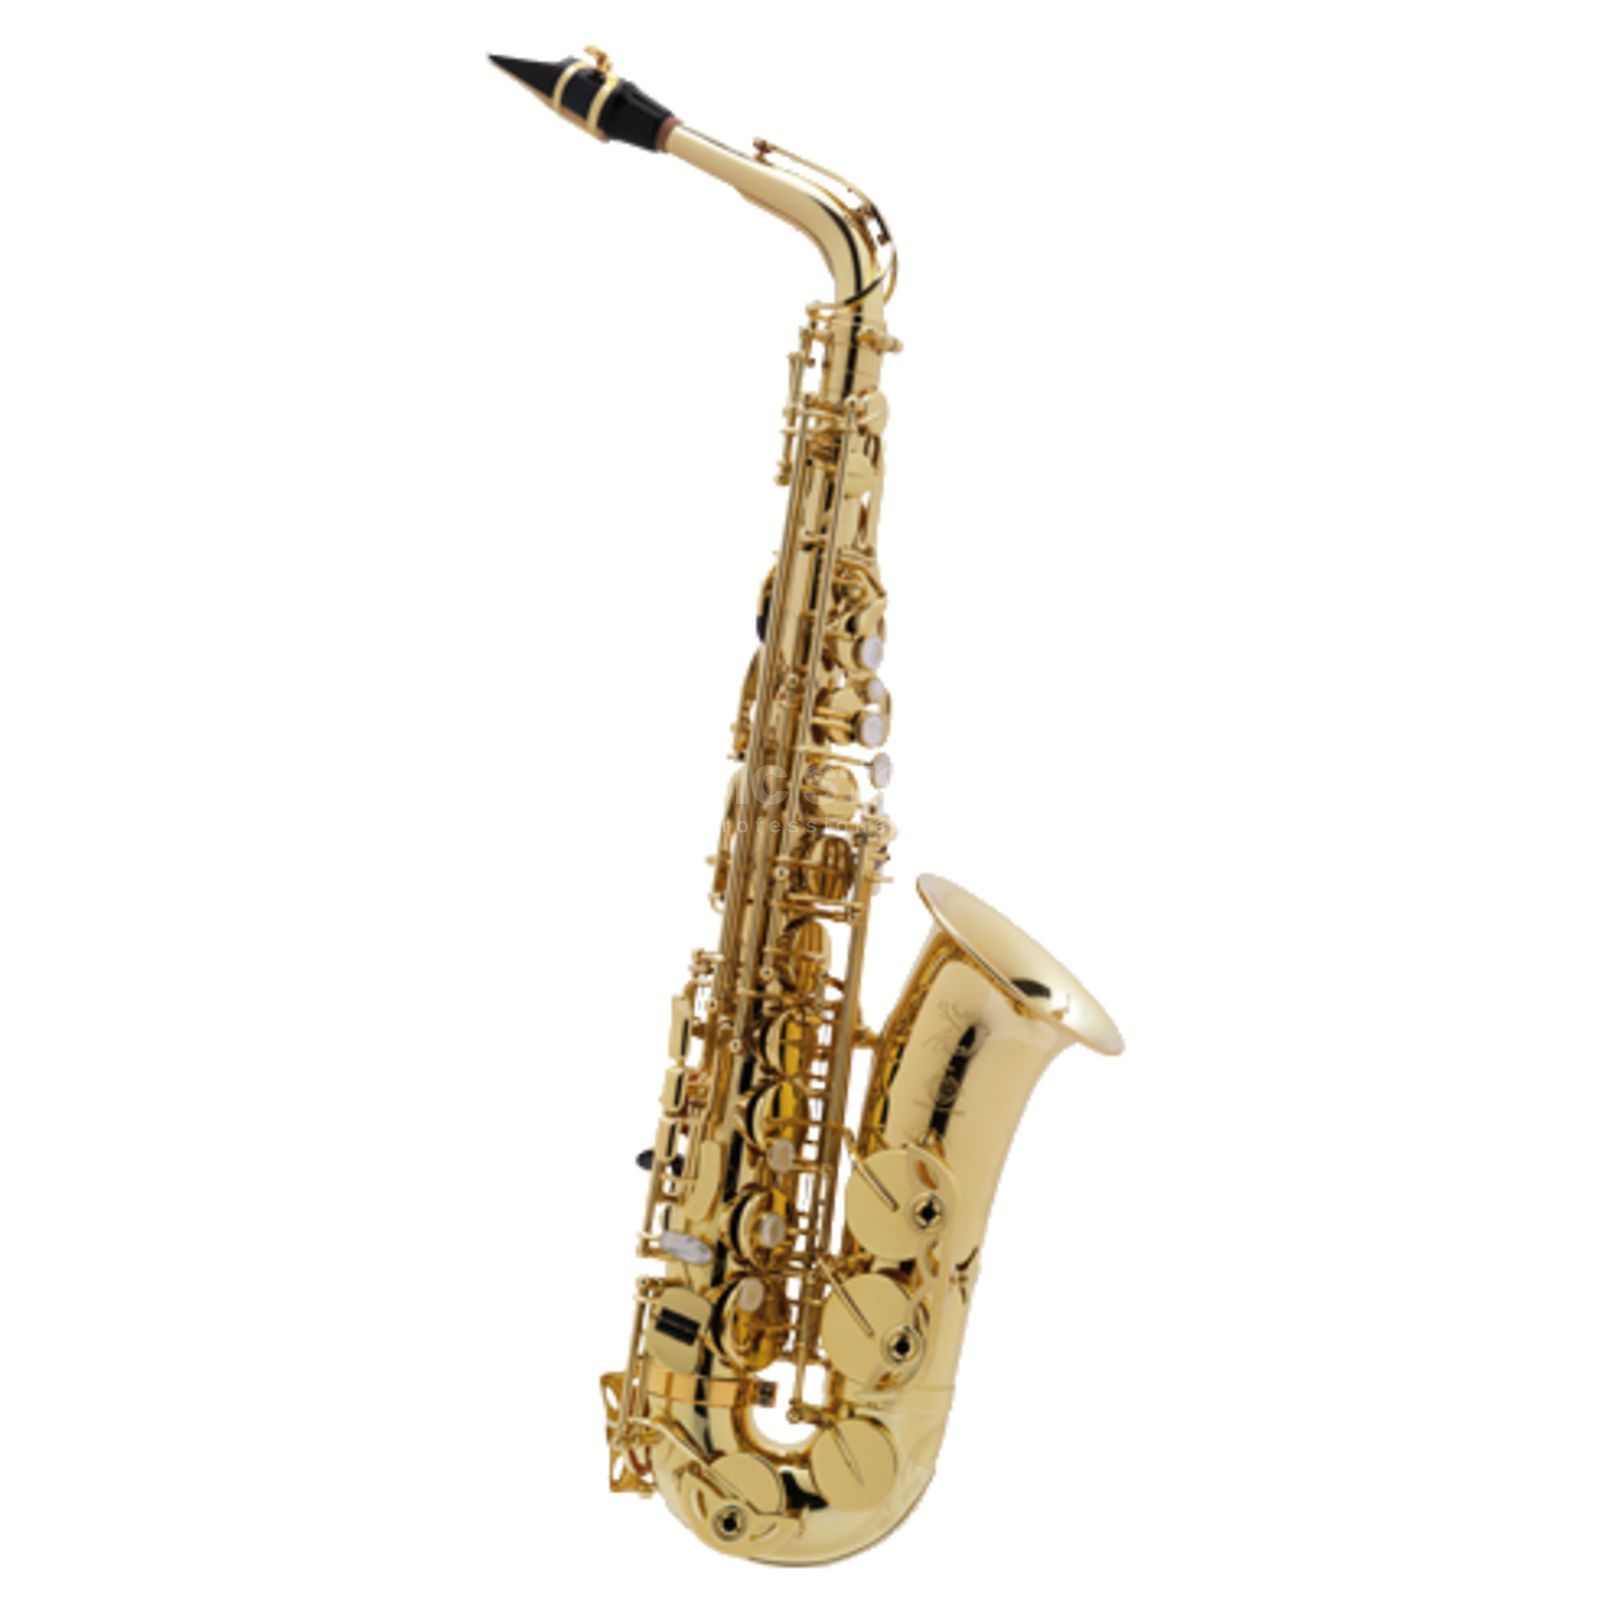 SeleS Axos Eb Alt saxofoon made by Selmer in  France Productafbeelding